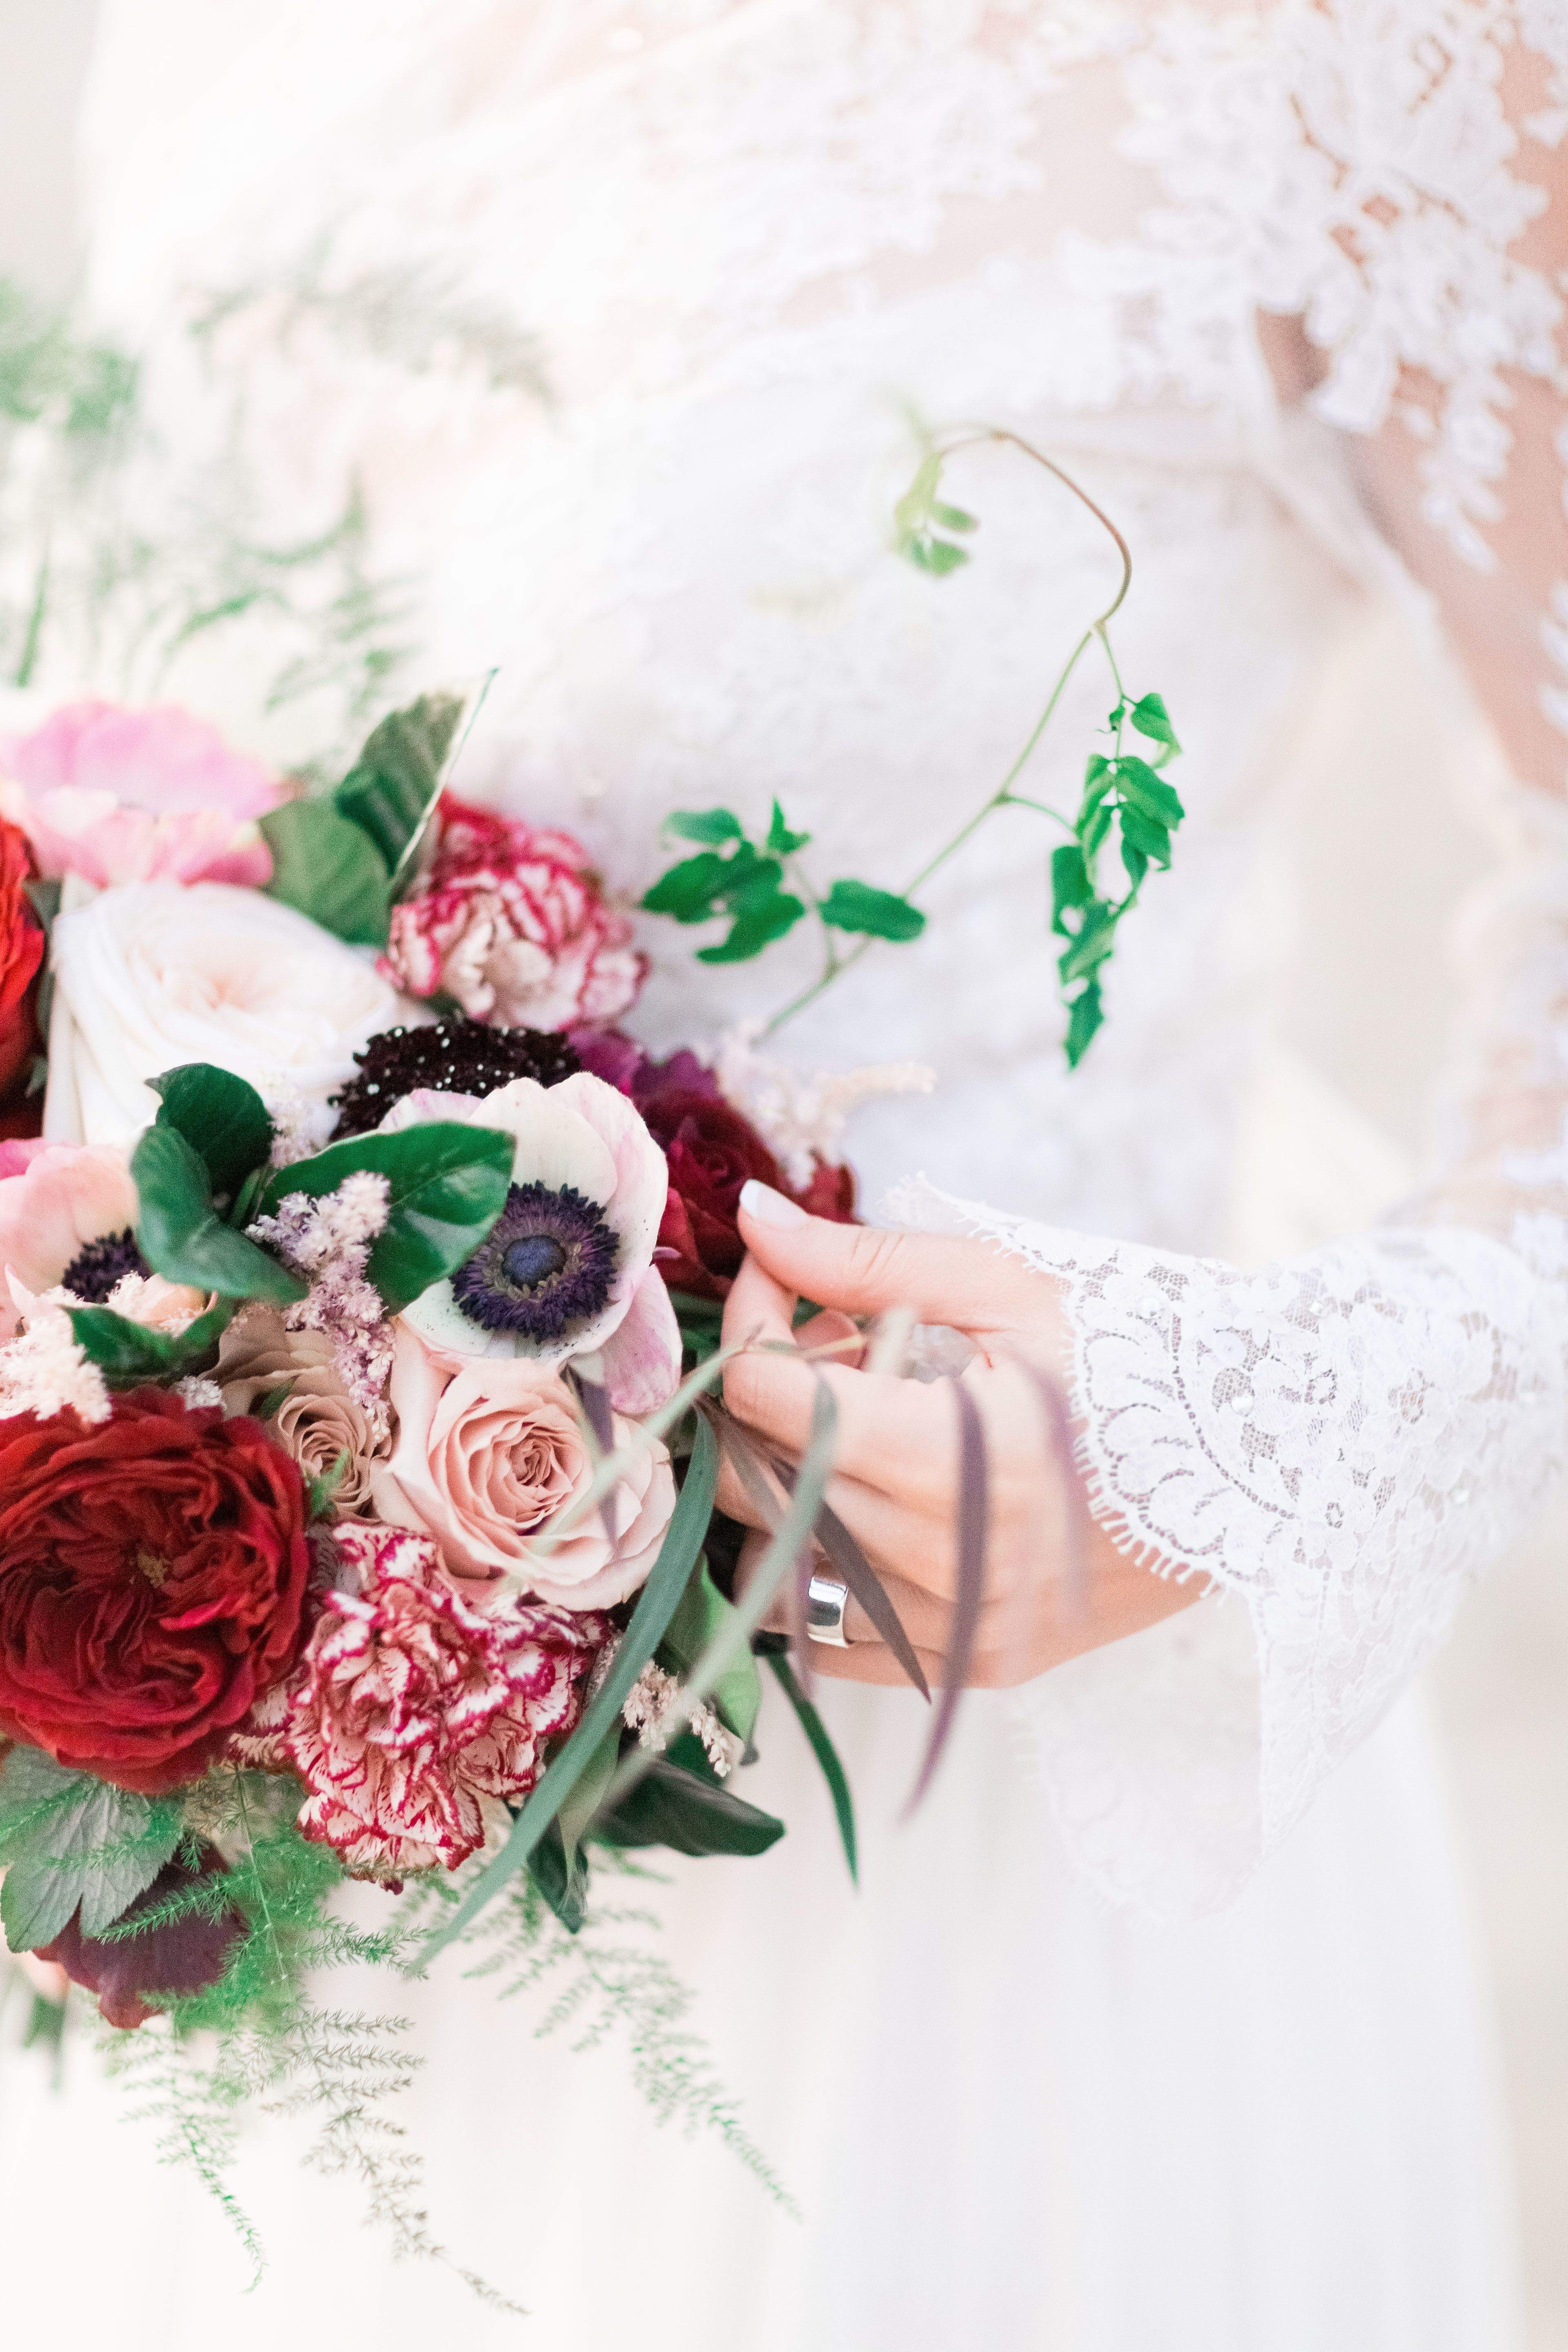 What Does Your Favorite Flower Mean? Fall wedding